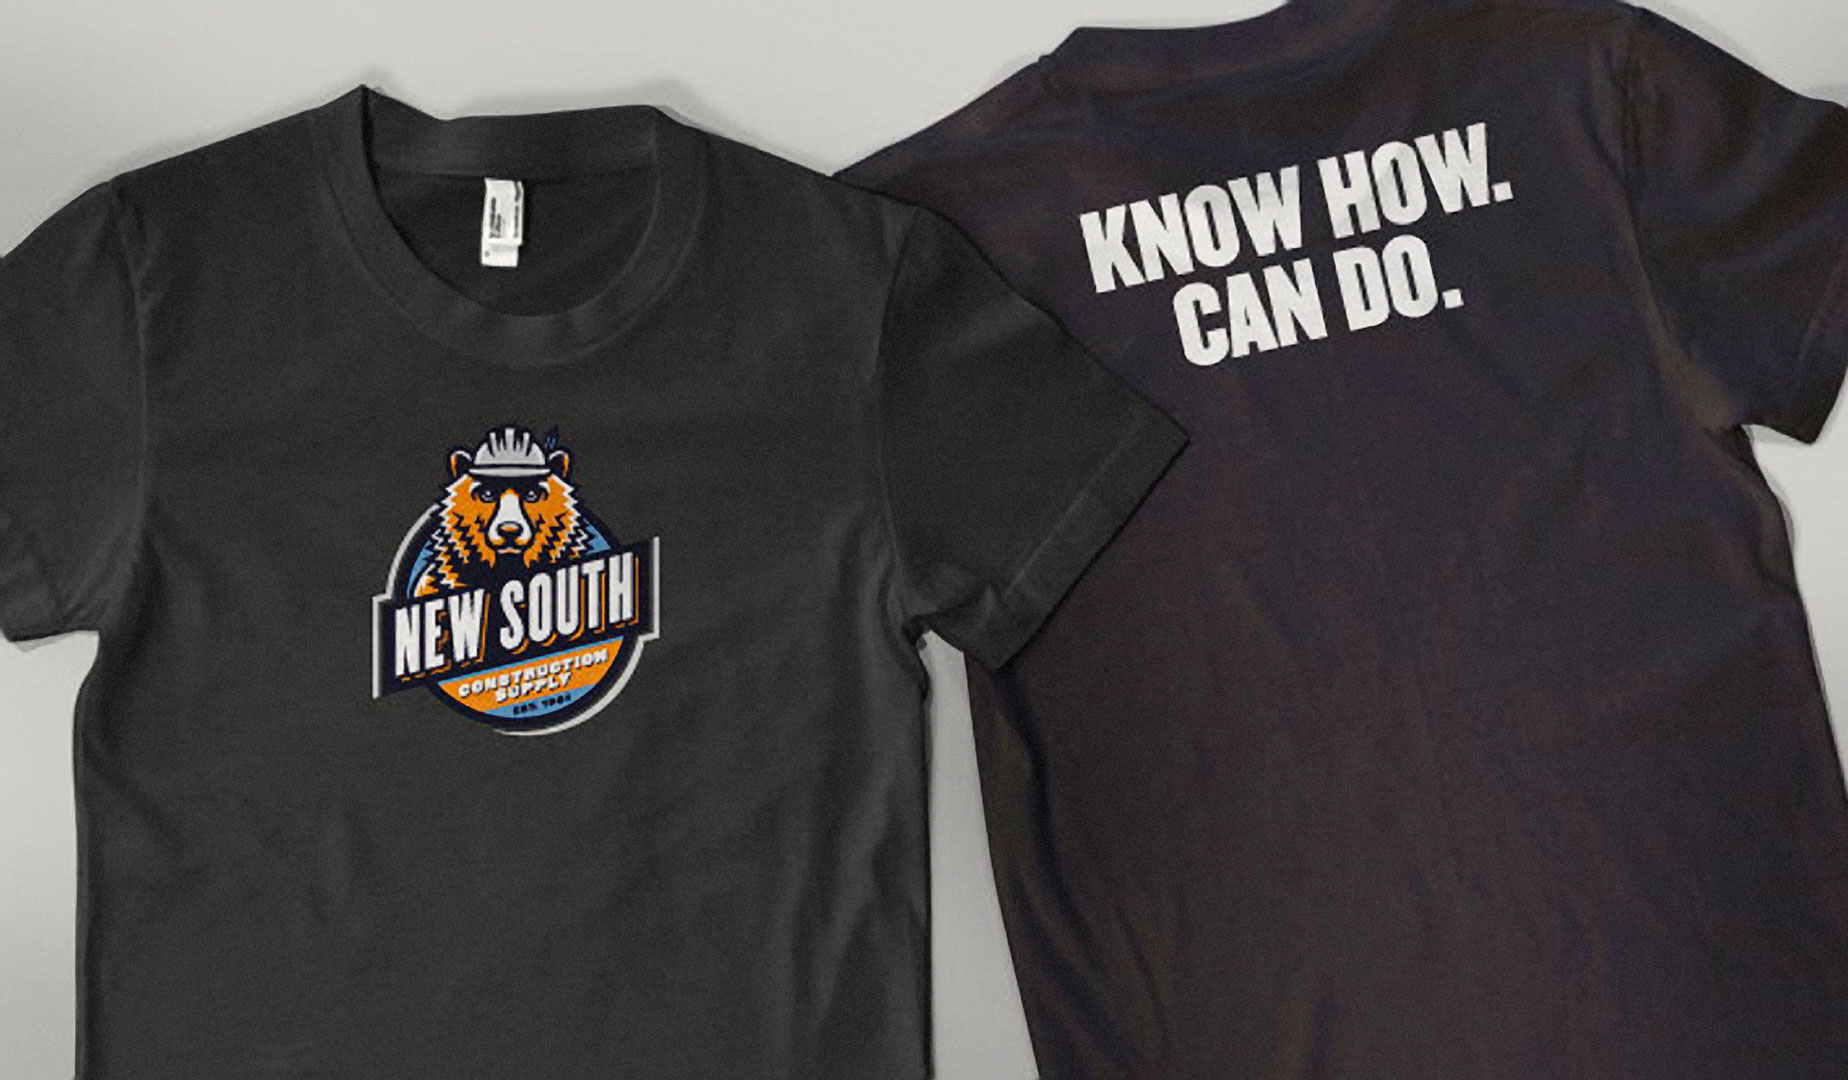 New South Construction Supply - Shirt